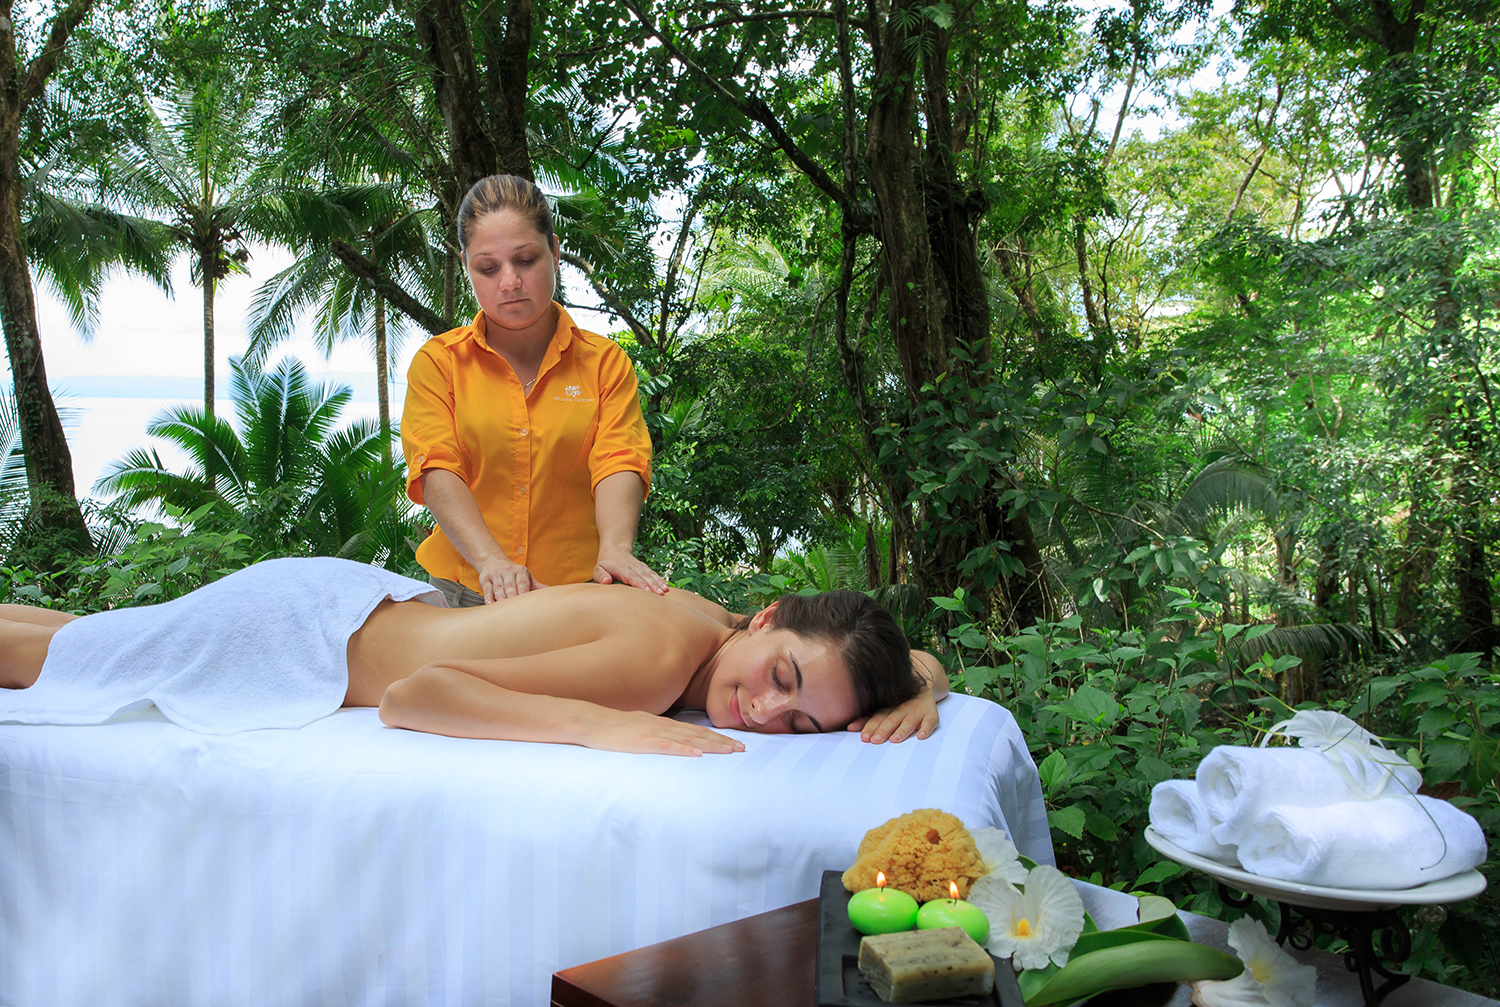 The Lotus Wellness is immersed in nature and offers a signature menu of wellness treatments.